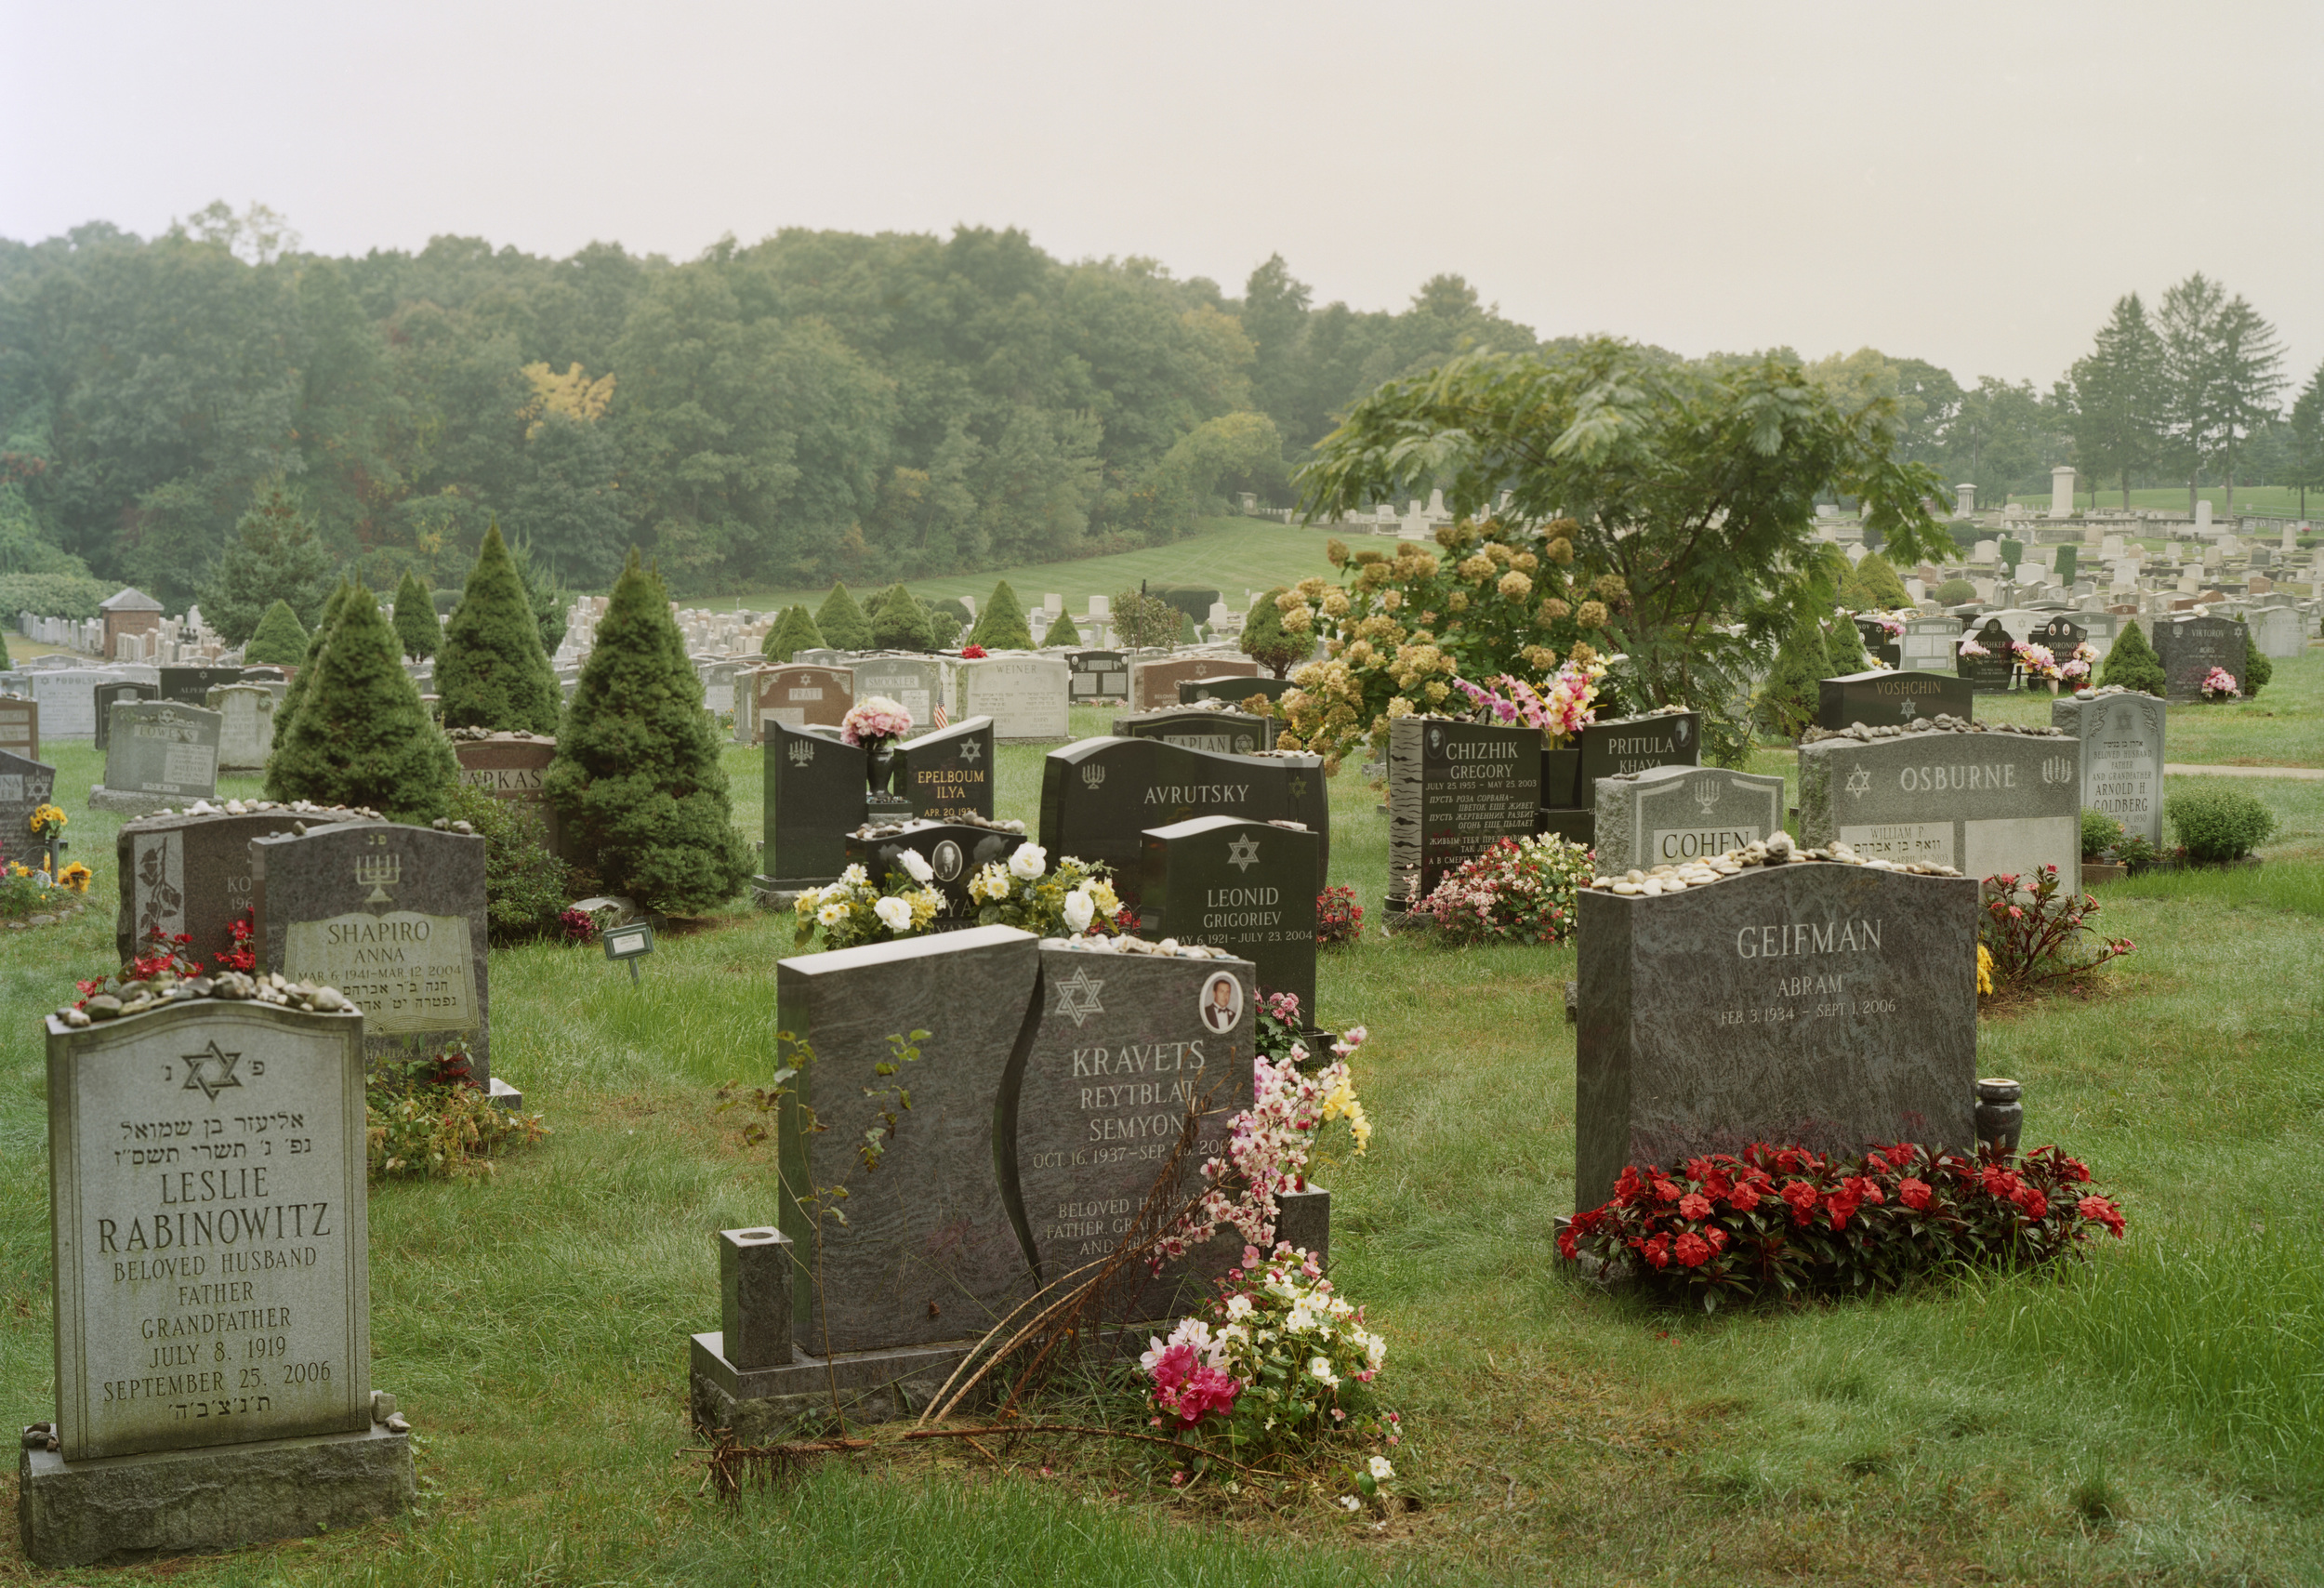 West Roxbury, 2013: Mount Lebanon Cemetery